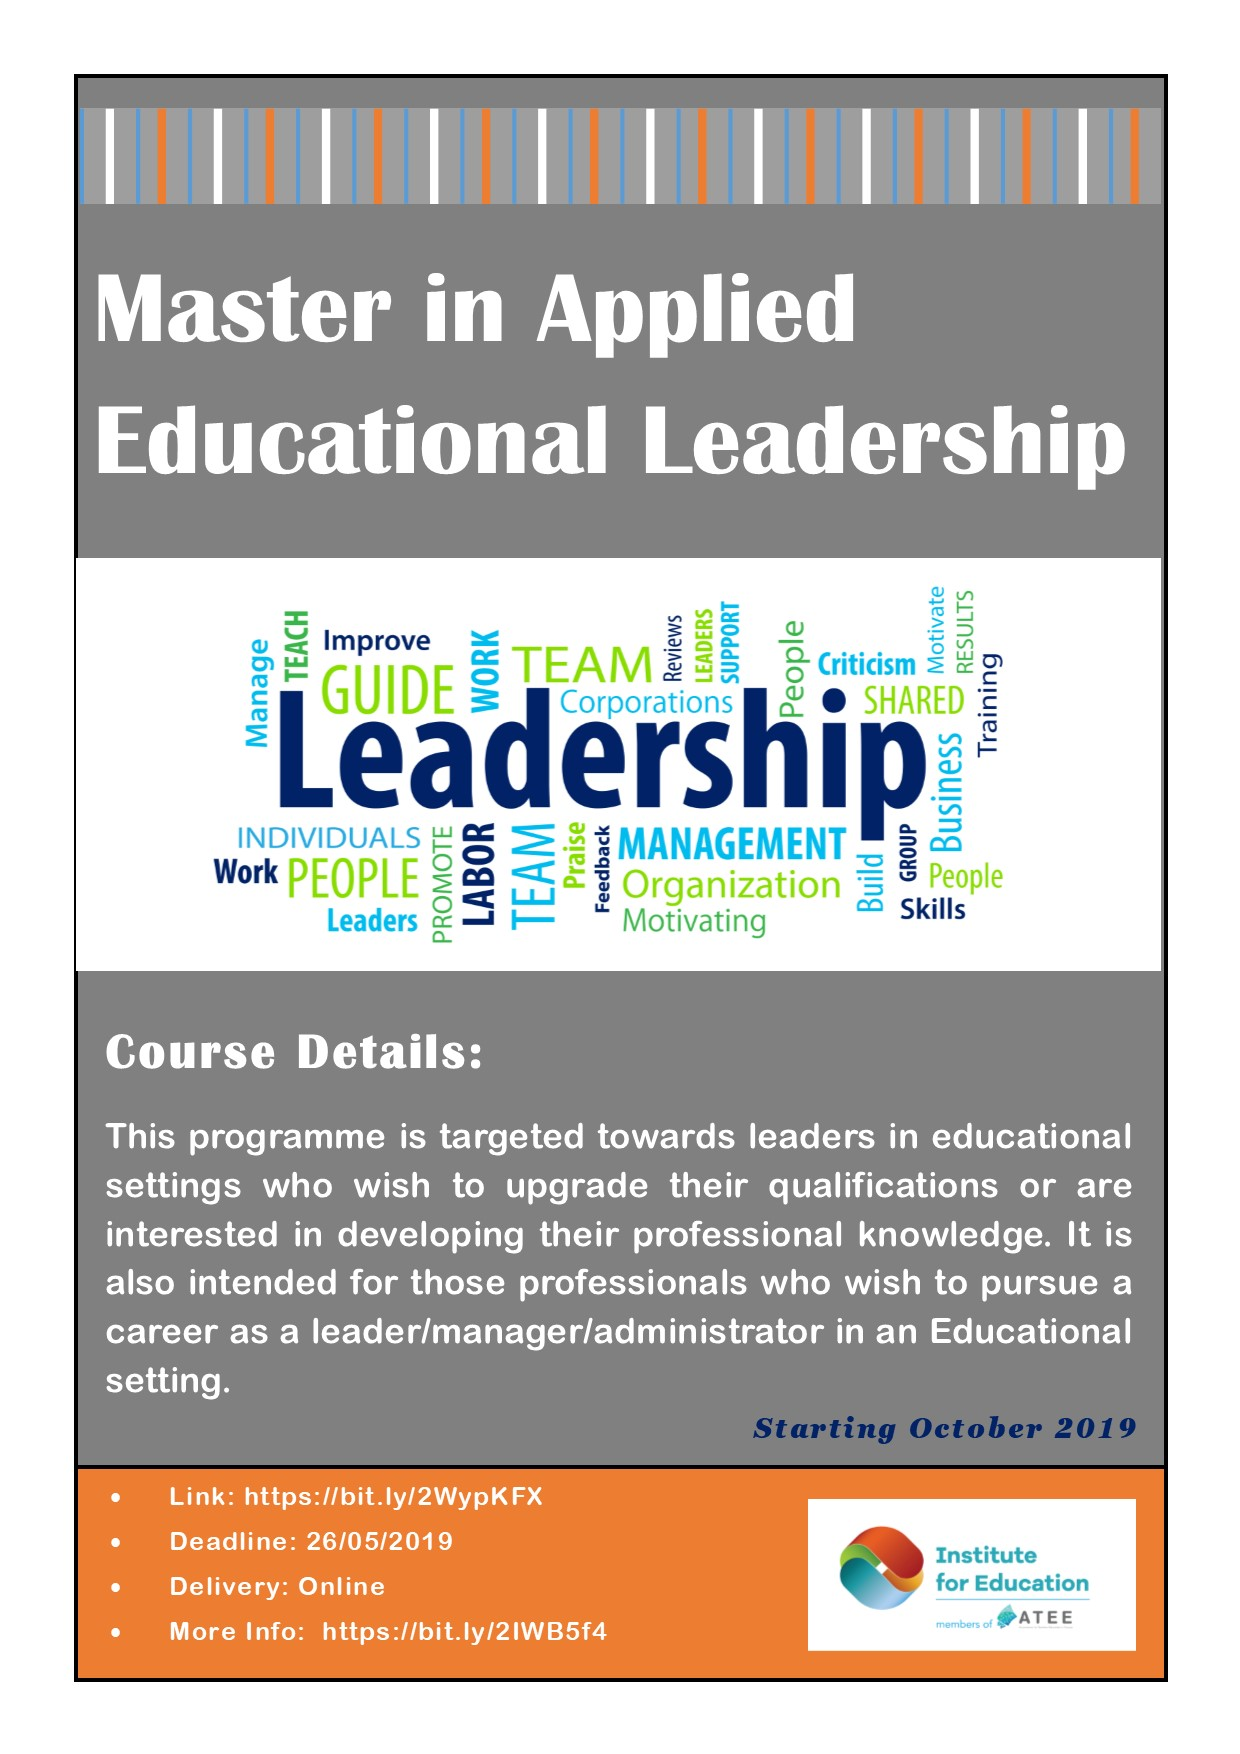 Master in Applied Educational Leadership.jpg